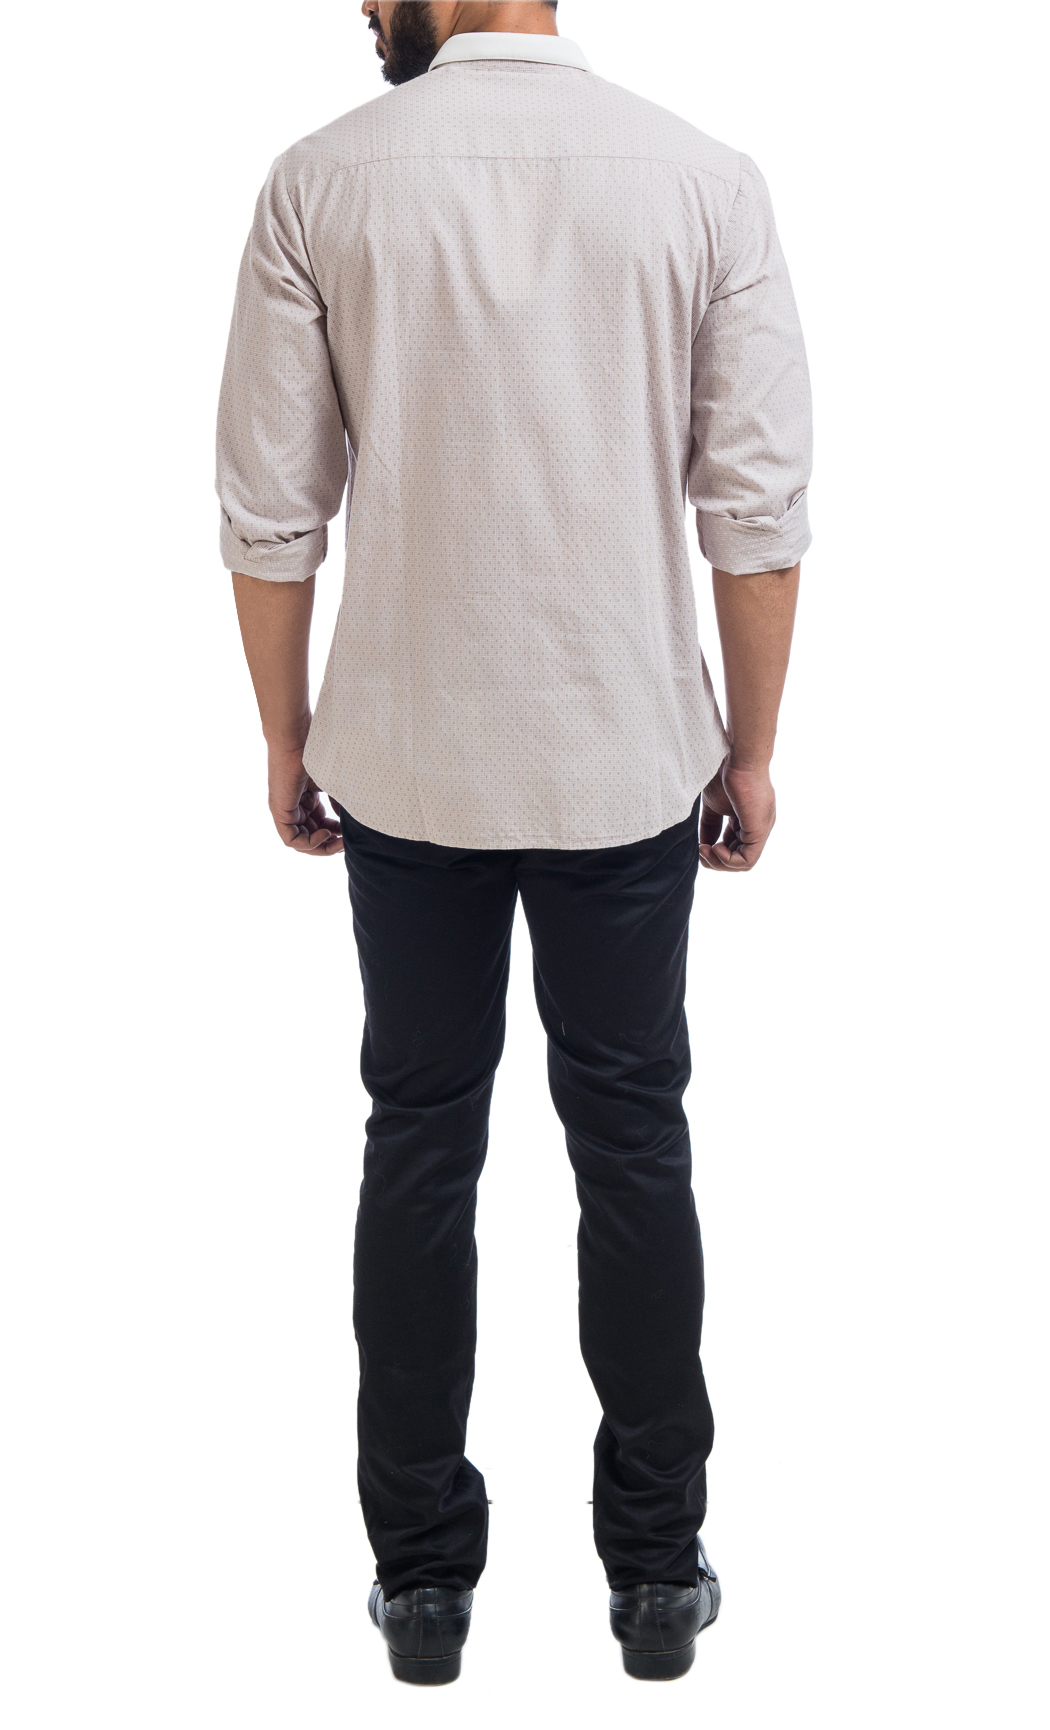 Off-White Cotton Shirt with a Knit Collar and Leather Applique